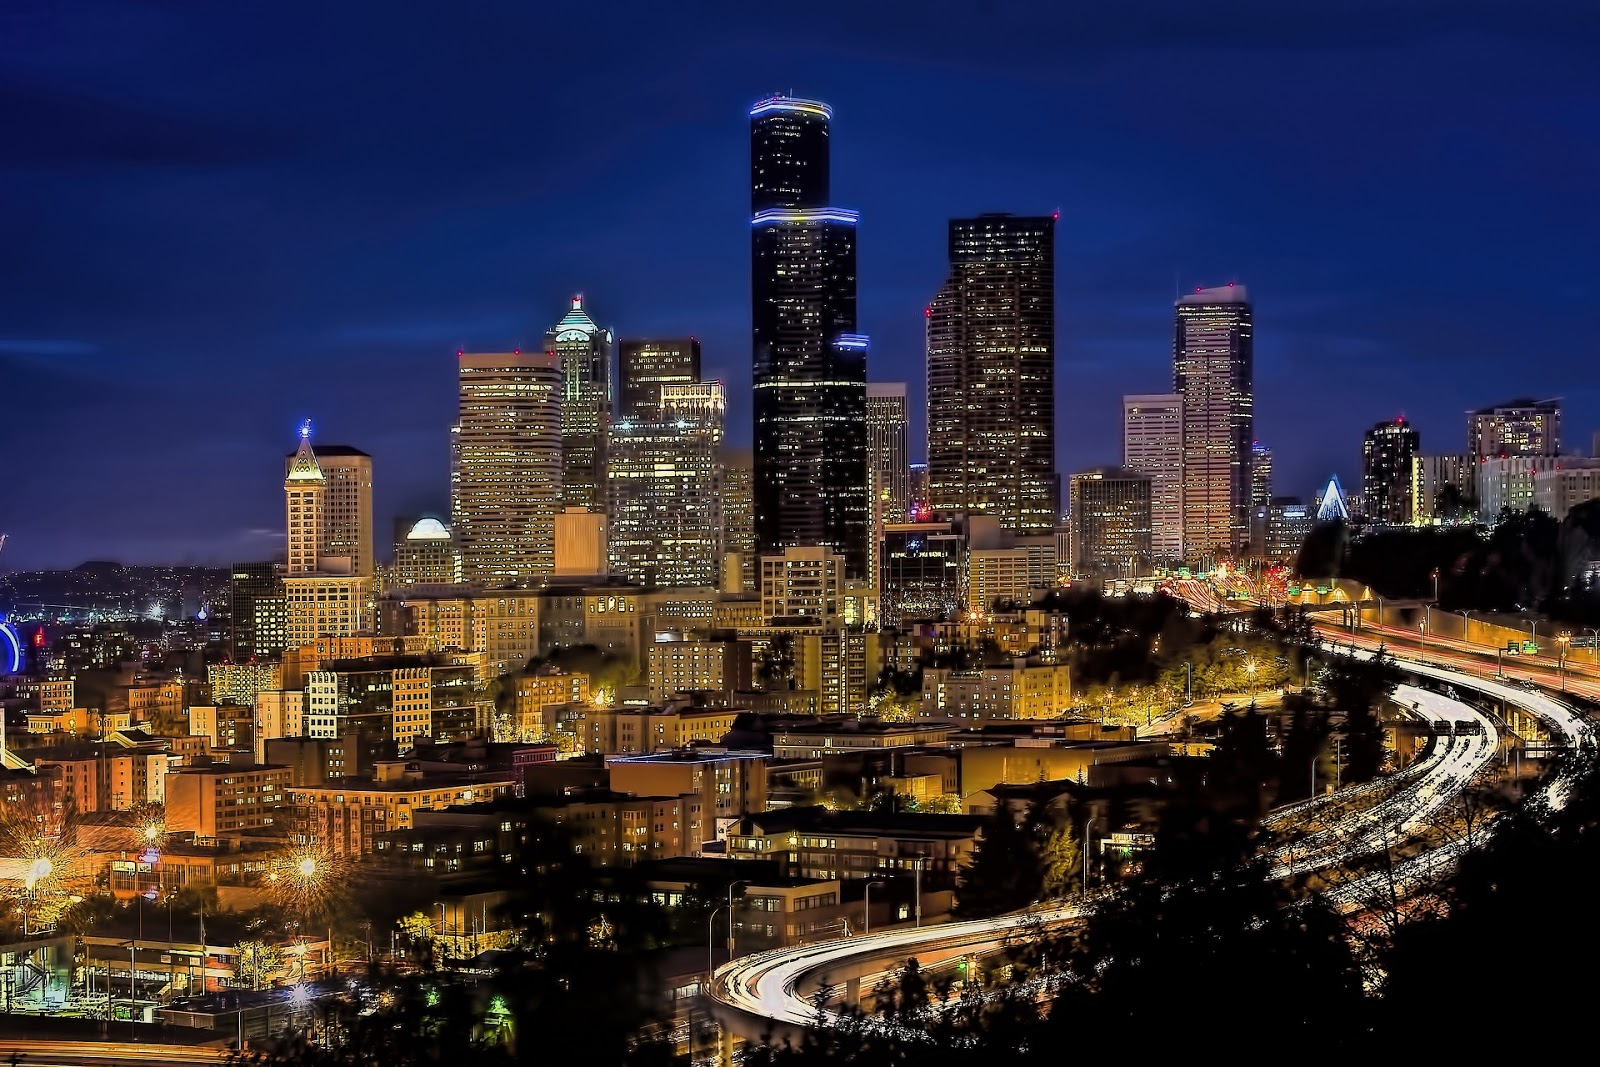 night time view of the city of Seattle